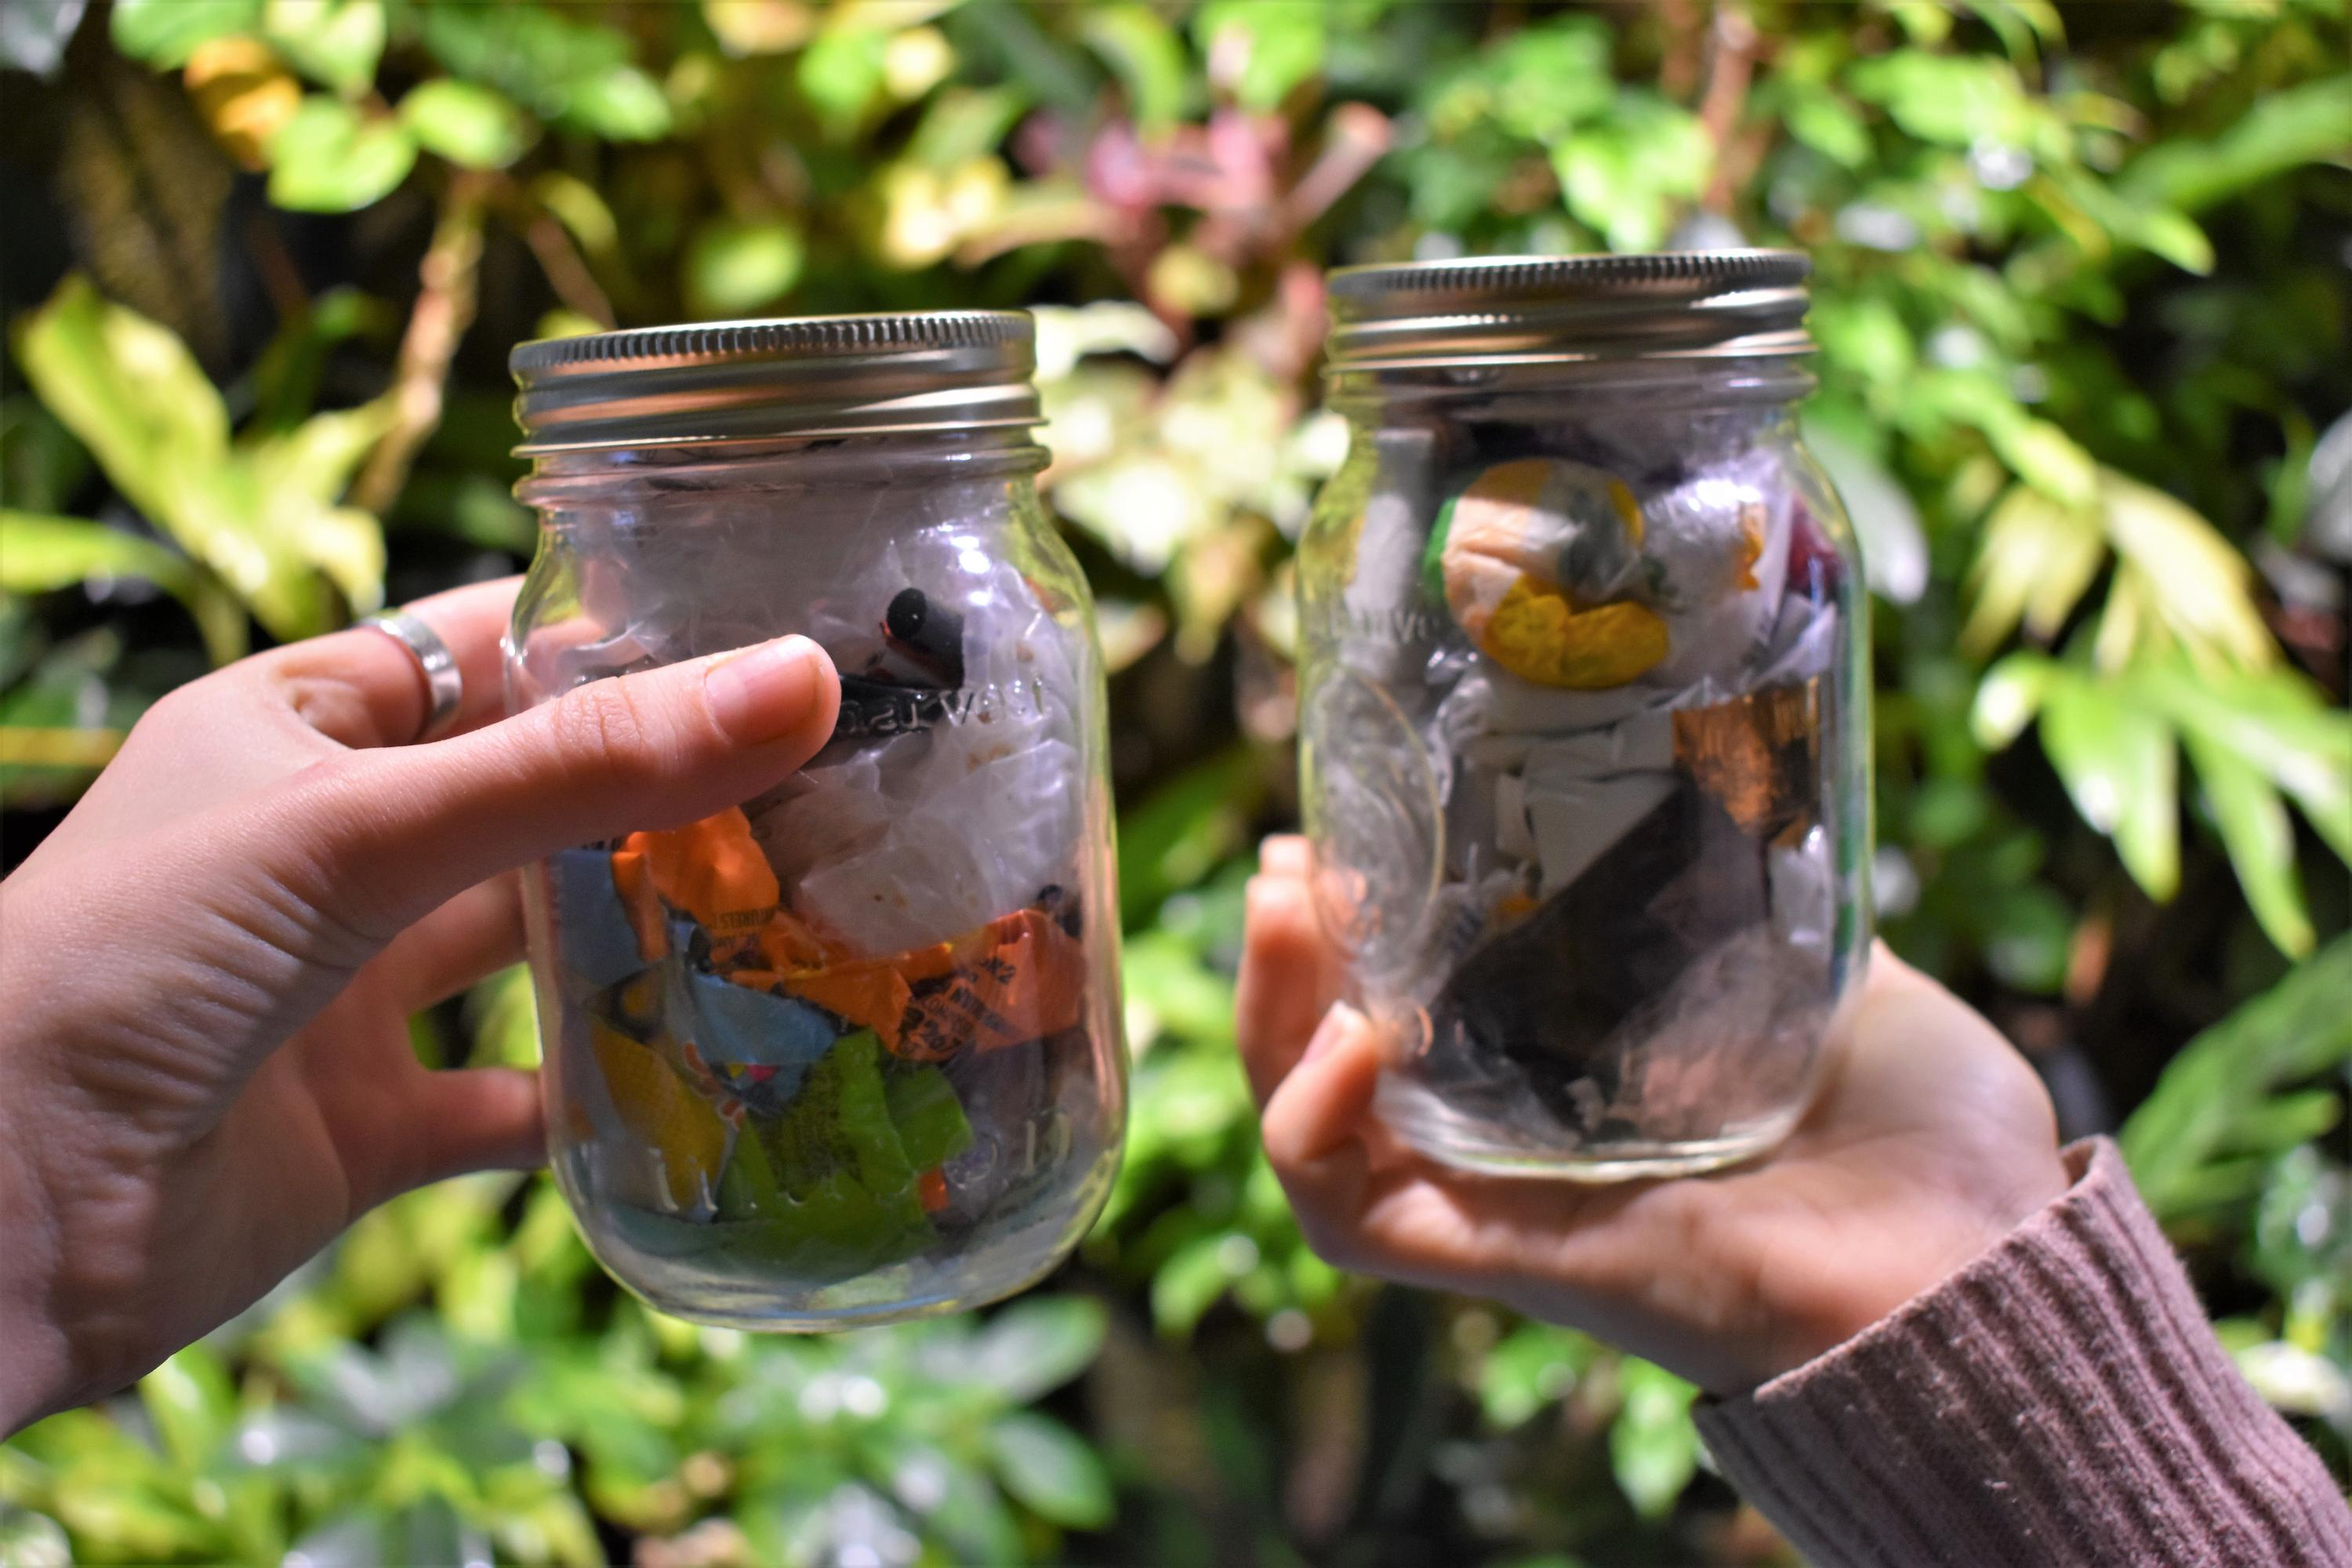 Beth and Andrea's mason jars after the 30 day challenge